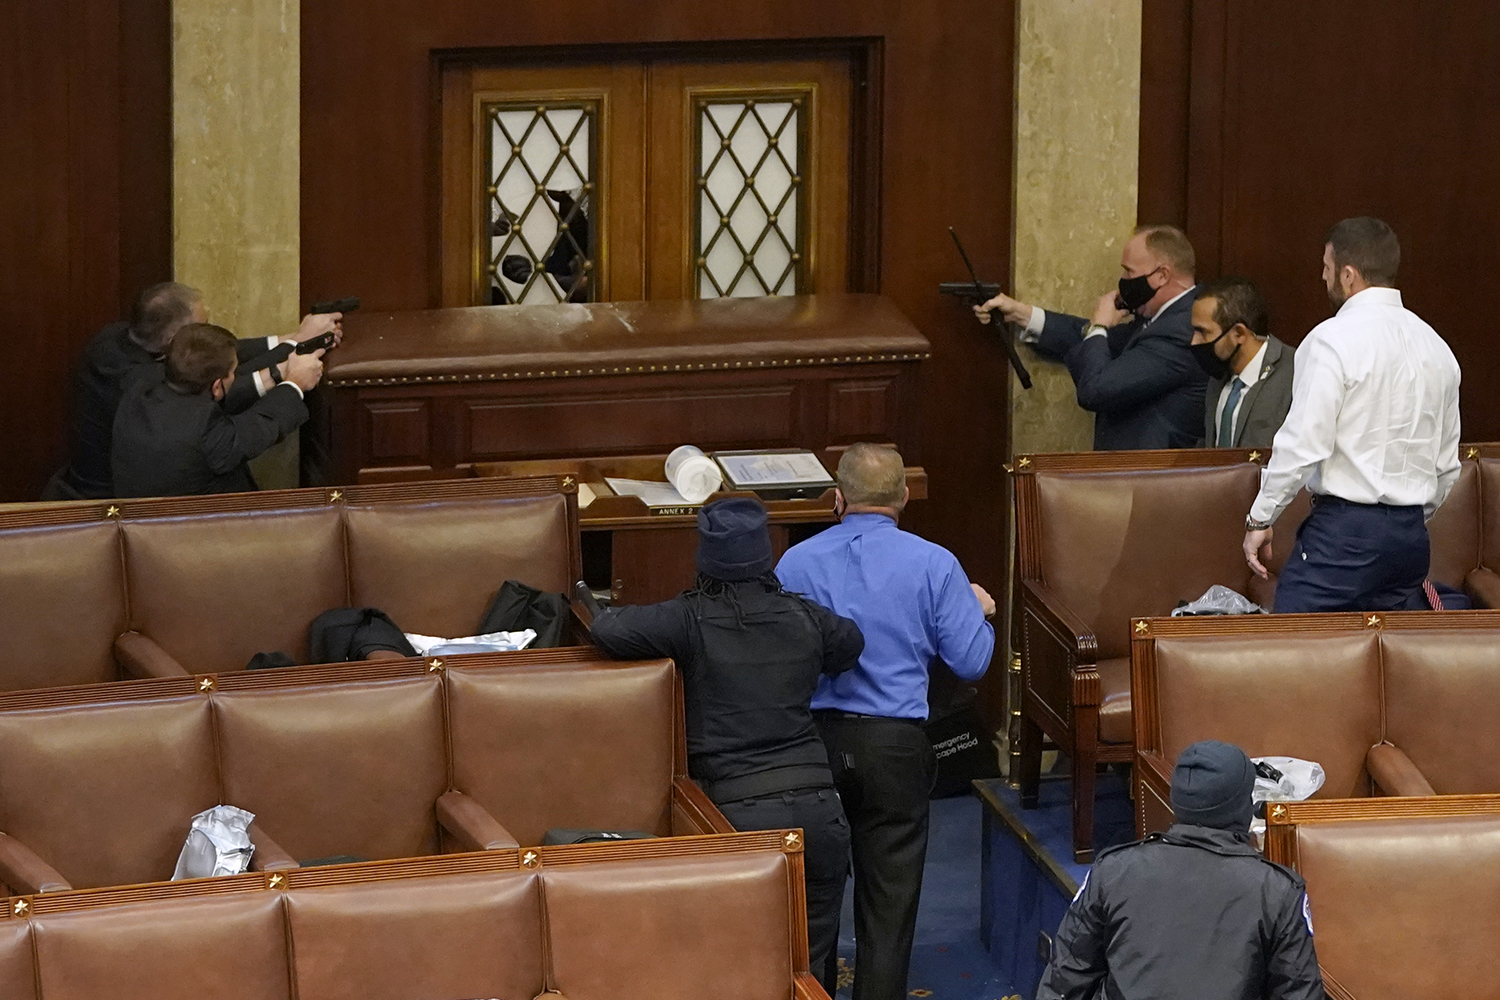 U.S. Capitol police officers point their guns at a door as insurrectionists attempt to get inside the Capitol's House chamber during a joint session of Congress in Washington on Jan. 6. Drew Angerer/Getty Images